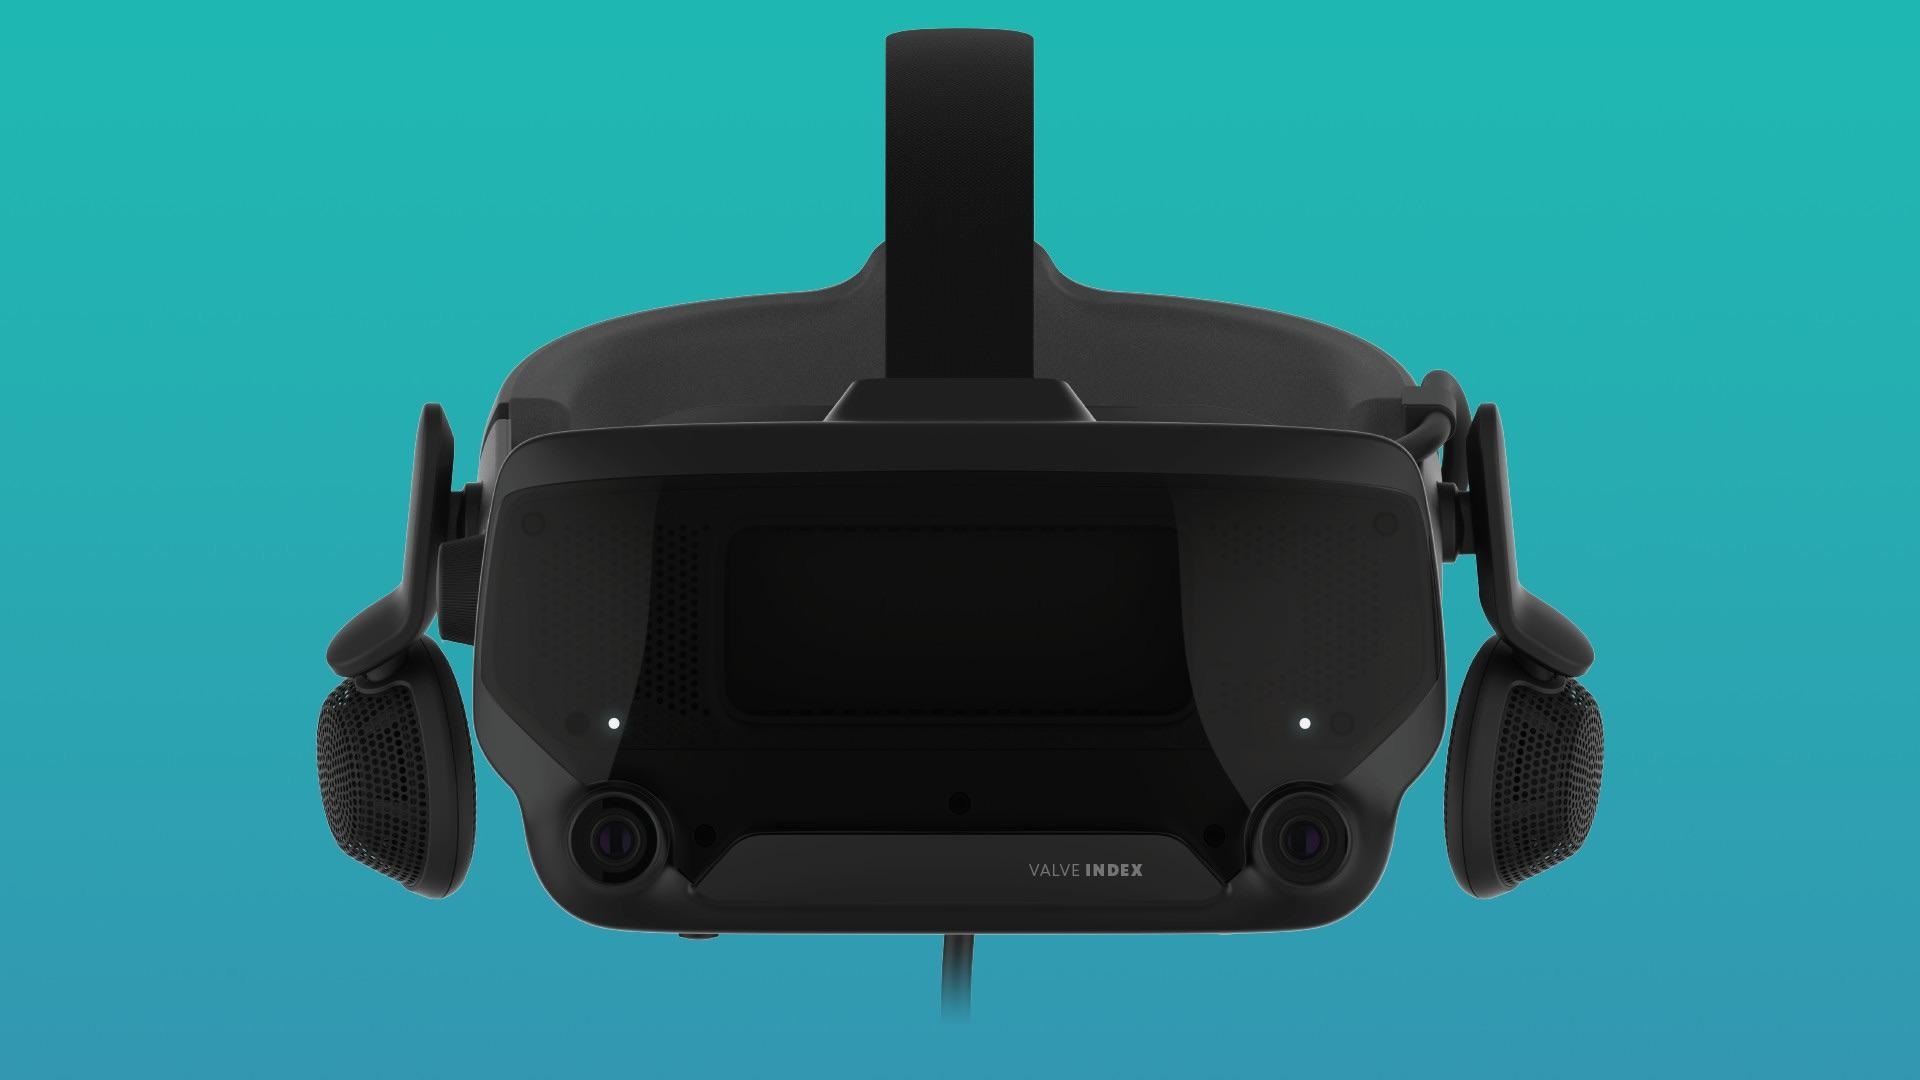 Valve has quietly announced a new VR headset called the Valve Index